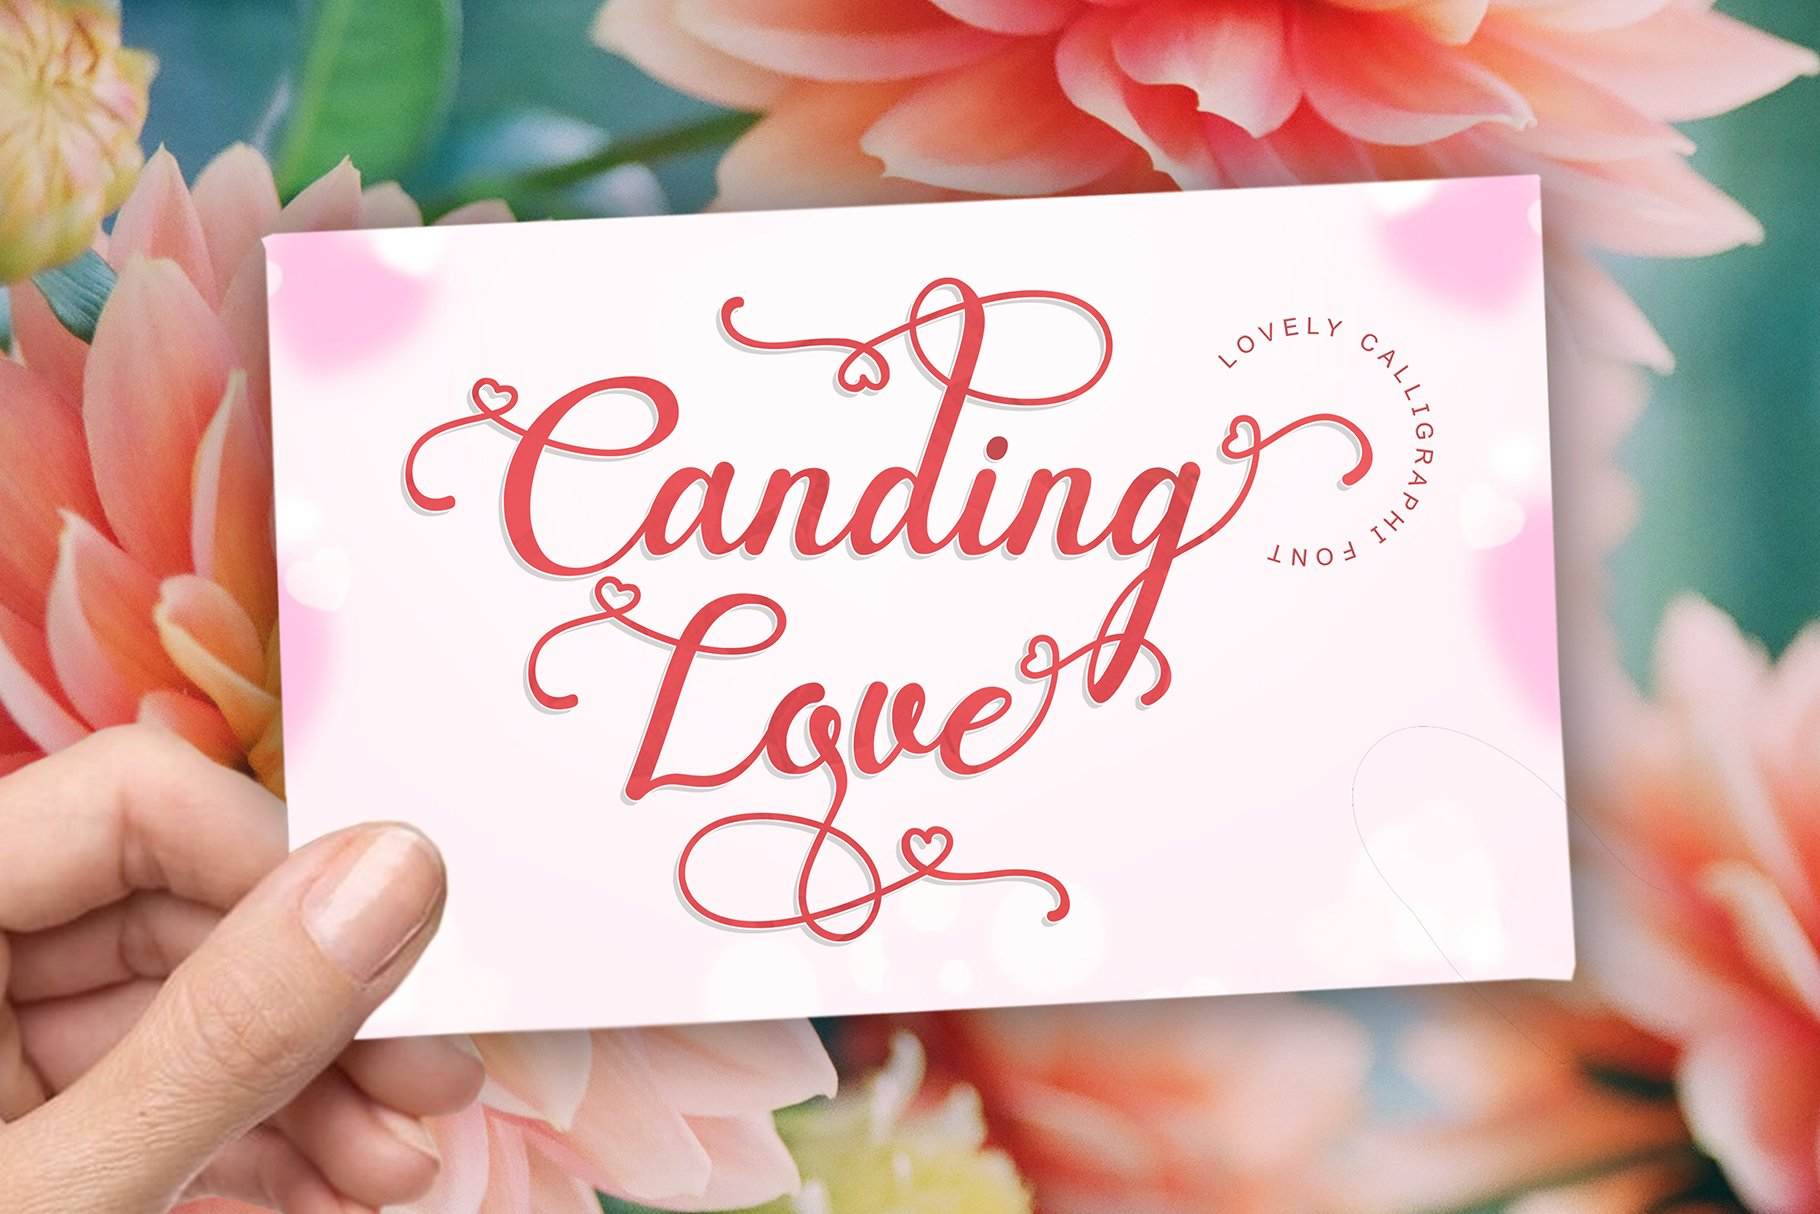 Canding Love - Script font Type face example image 1